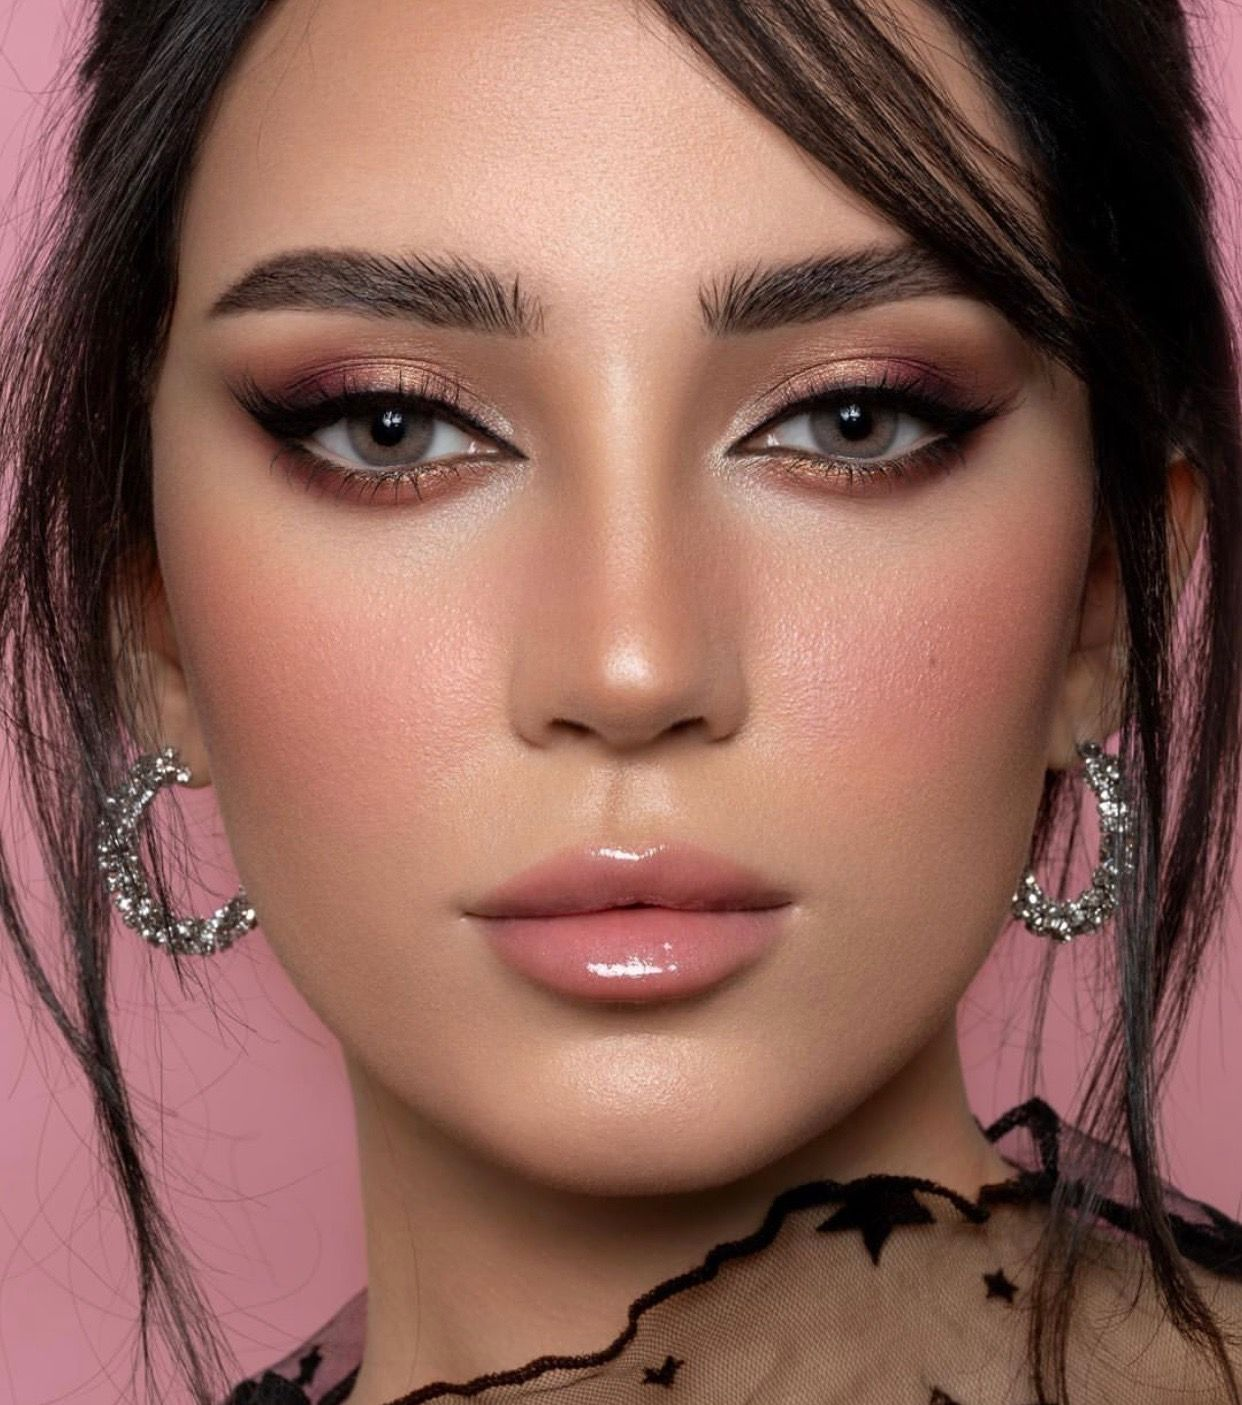 Pin by Hind Shuqqo on Makeup in 2020 Bridal makeup looks